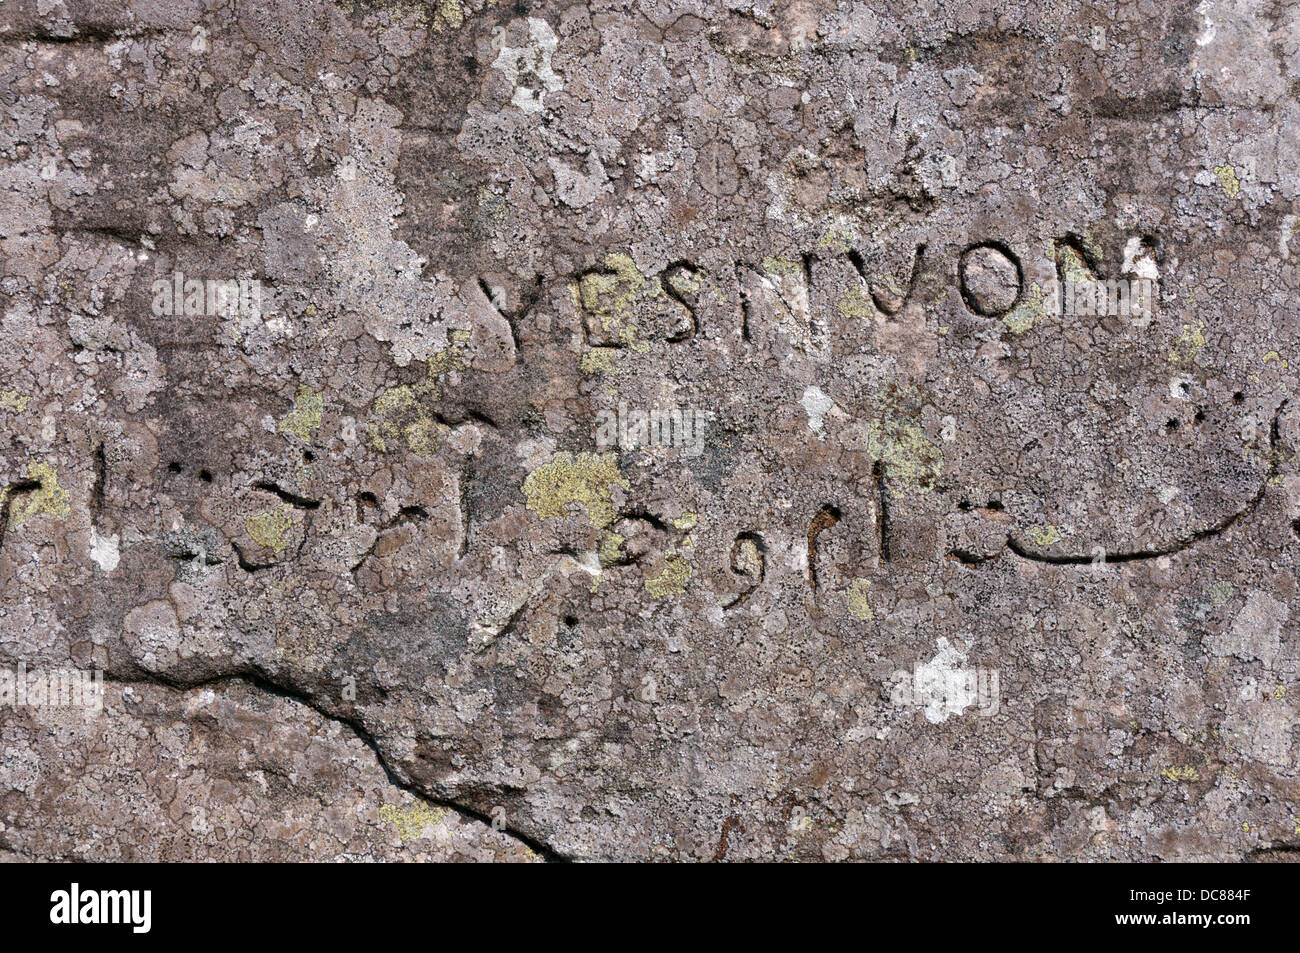 Victorian graffiti carved on the Dwarfie Stane on Hoy.  DETAILS IN DESCRIPTION. Stock Photo